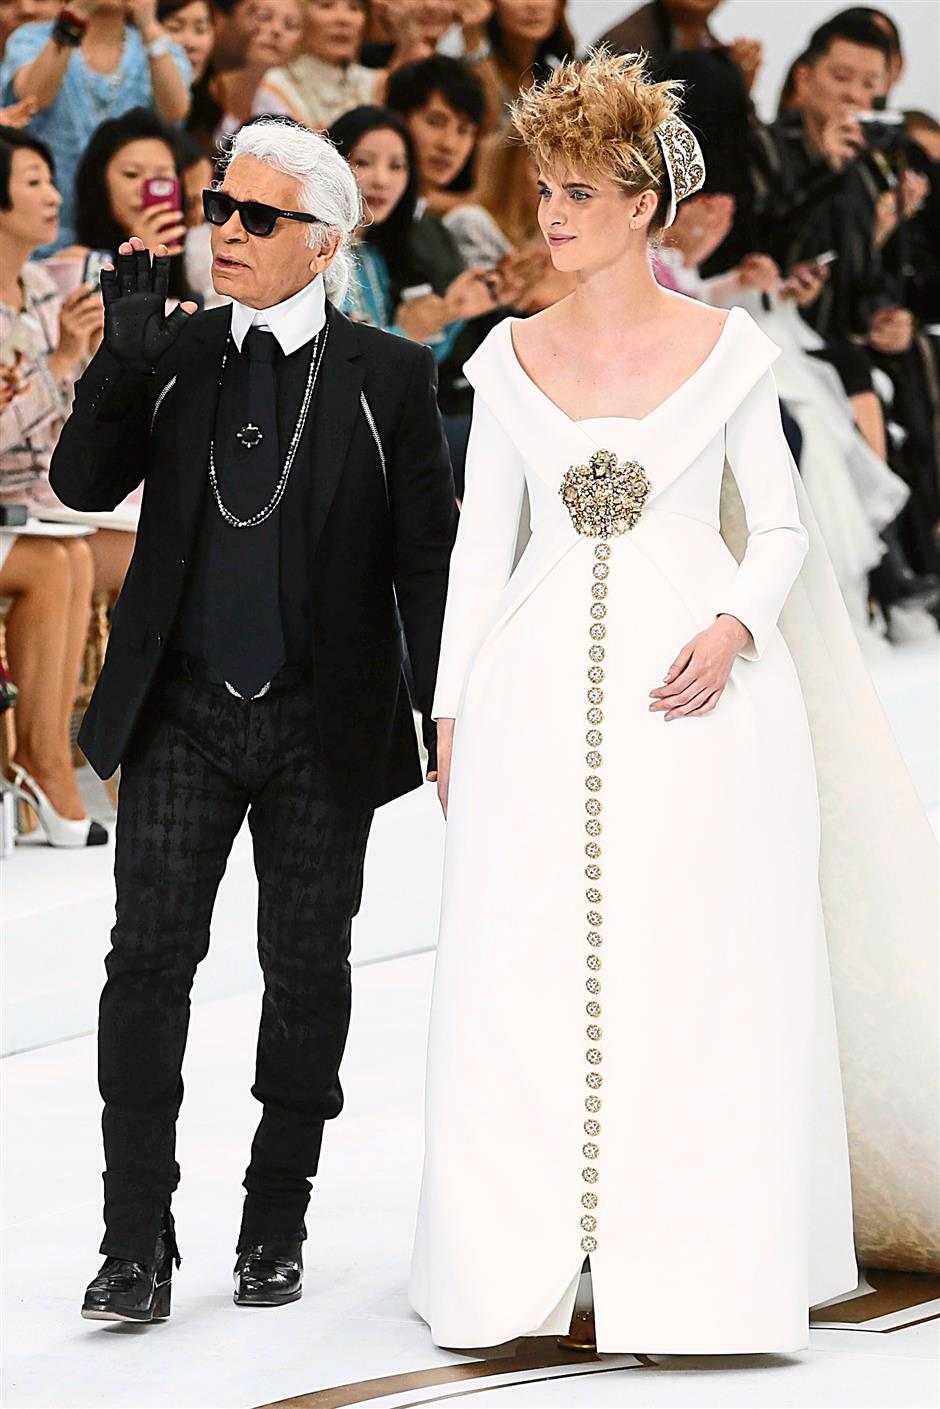 German fashion designer Karl Lagerfeld acknowledges the public with a model at the end of the Chanel 2014/2015 Haute Couture Fall-Winter collection fashion show on July 8, 2014 at the Grand Palais in Paris. AFP PHOTO / PATRICK KOVARIK